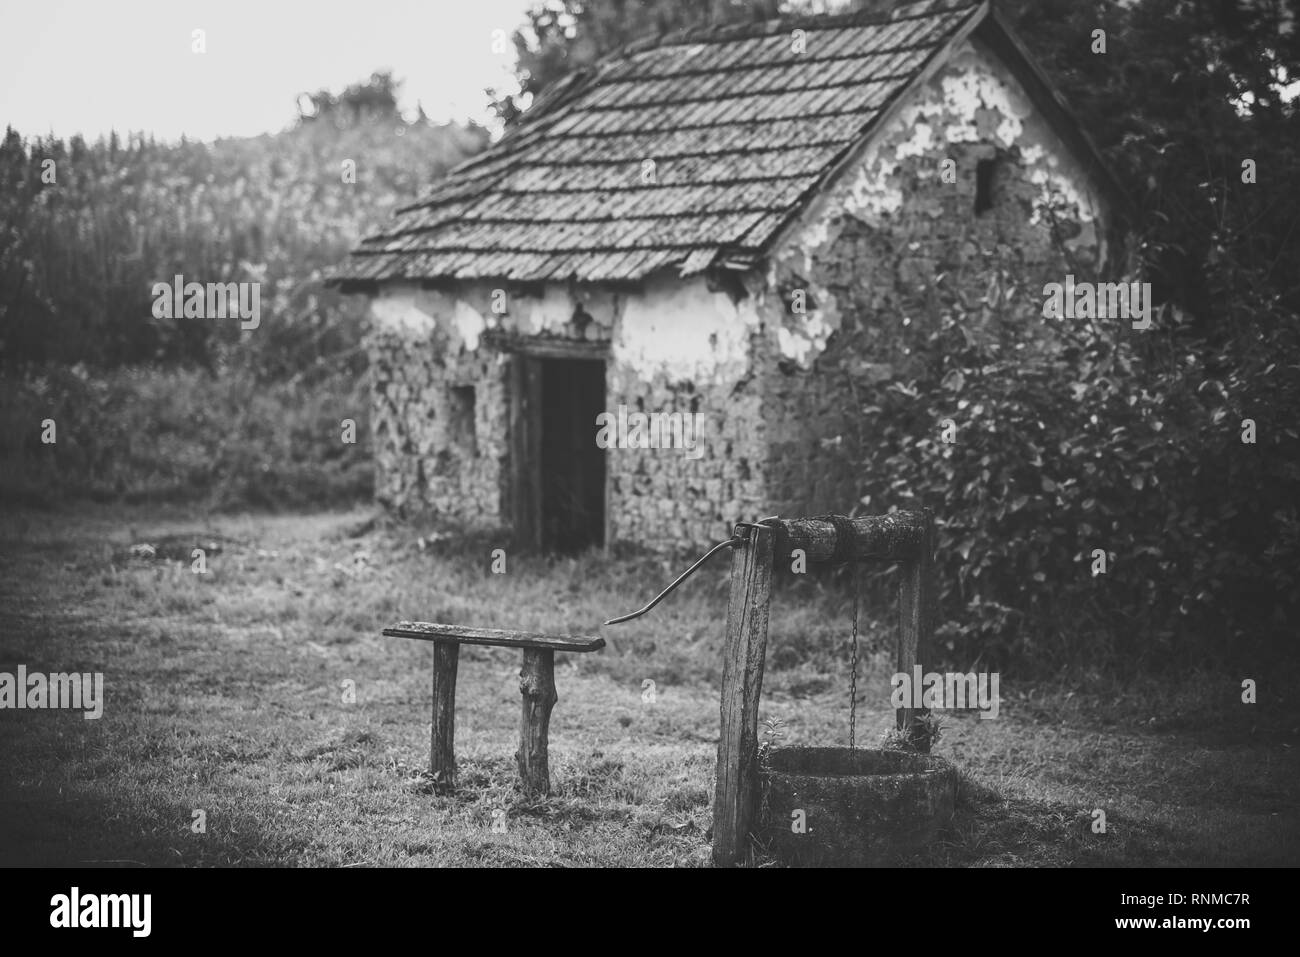 House barrack with old well in yard - Stock Image